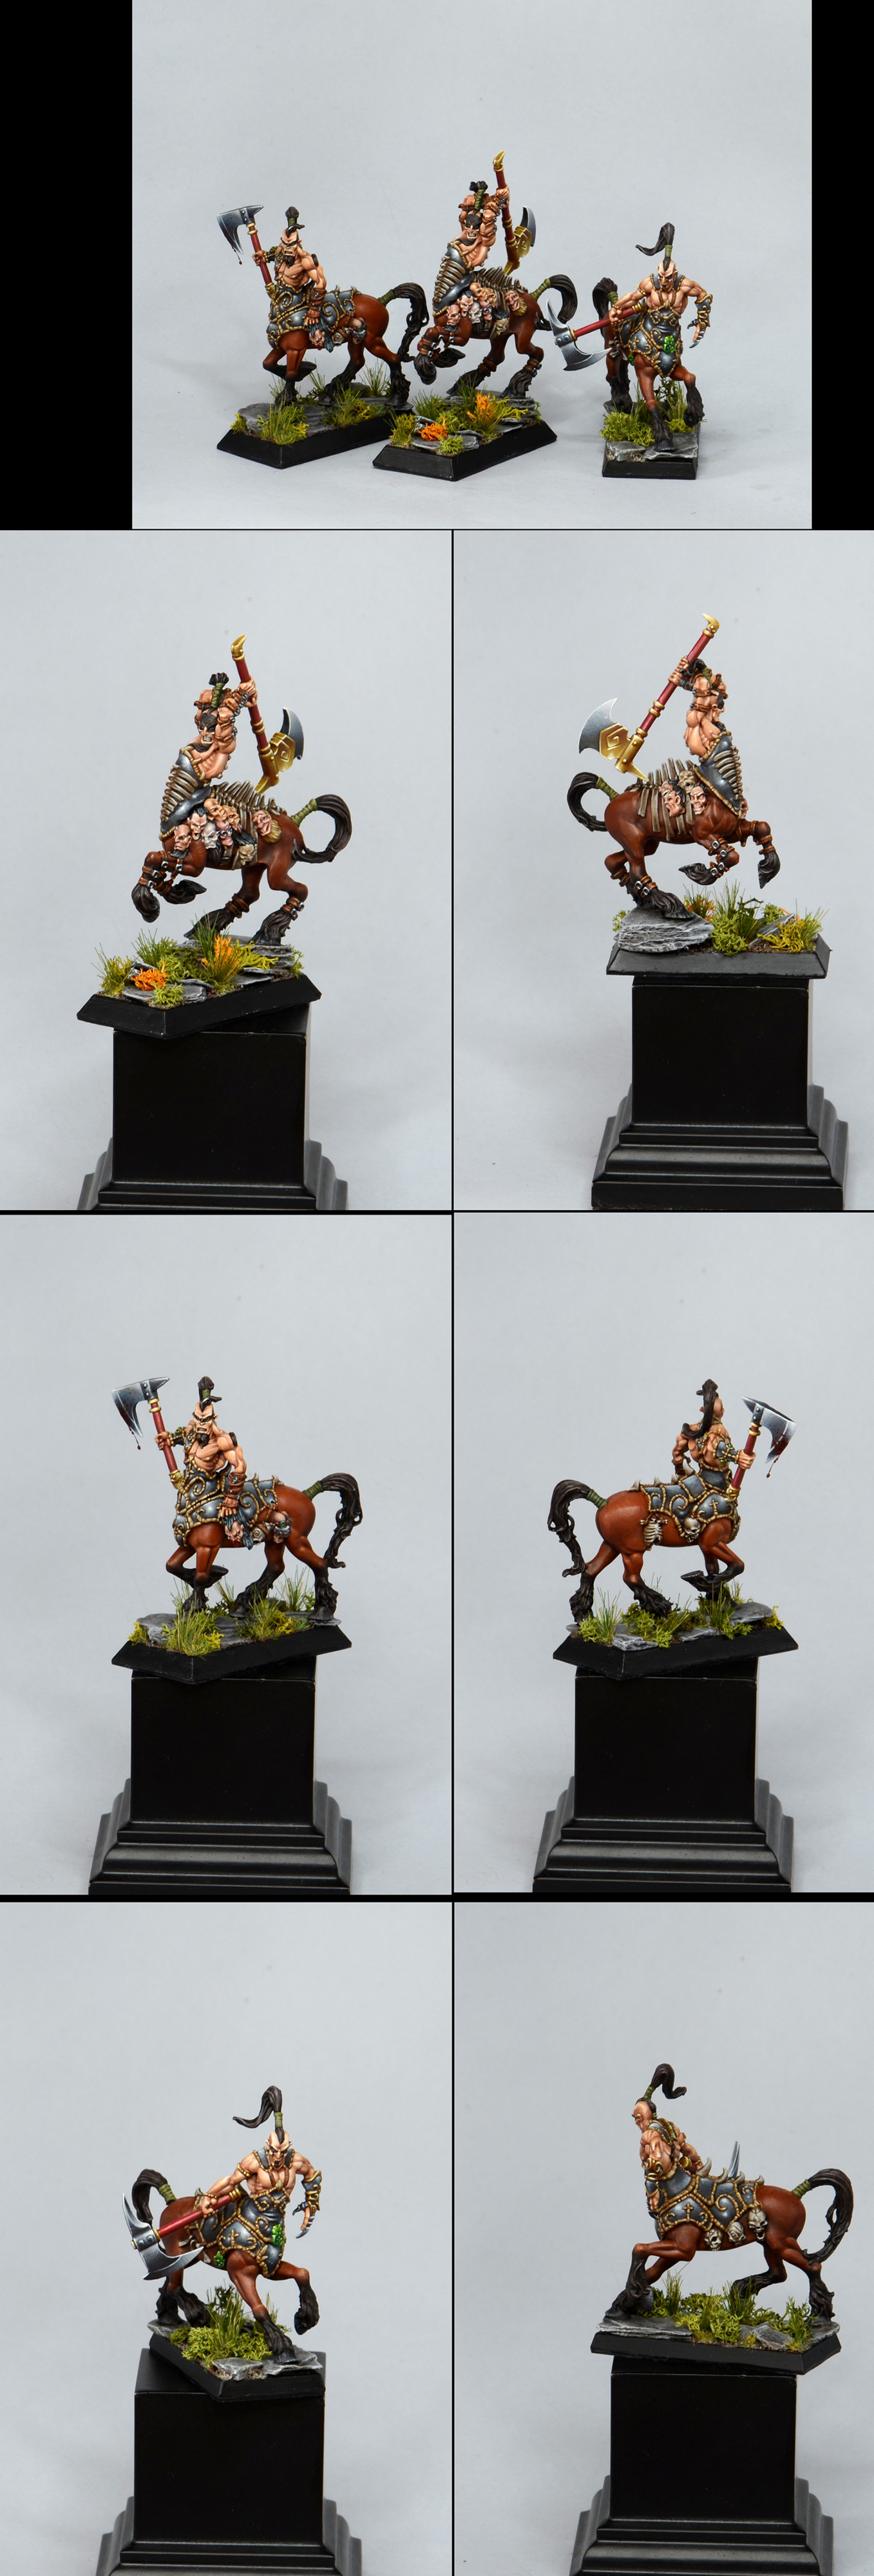 Baal and centaurs